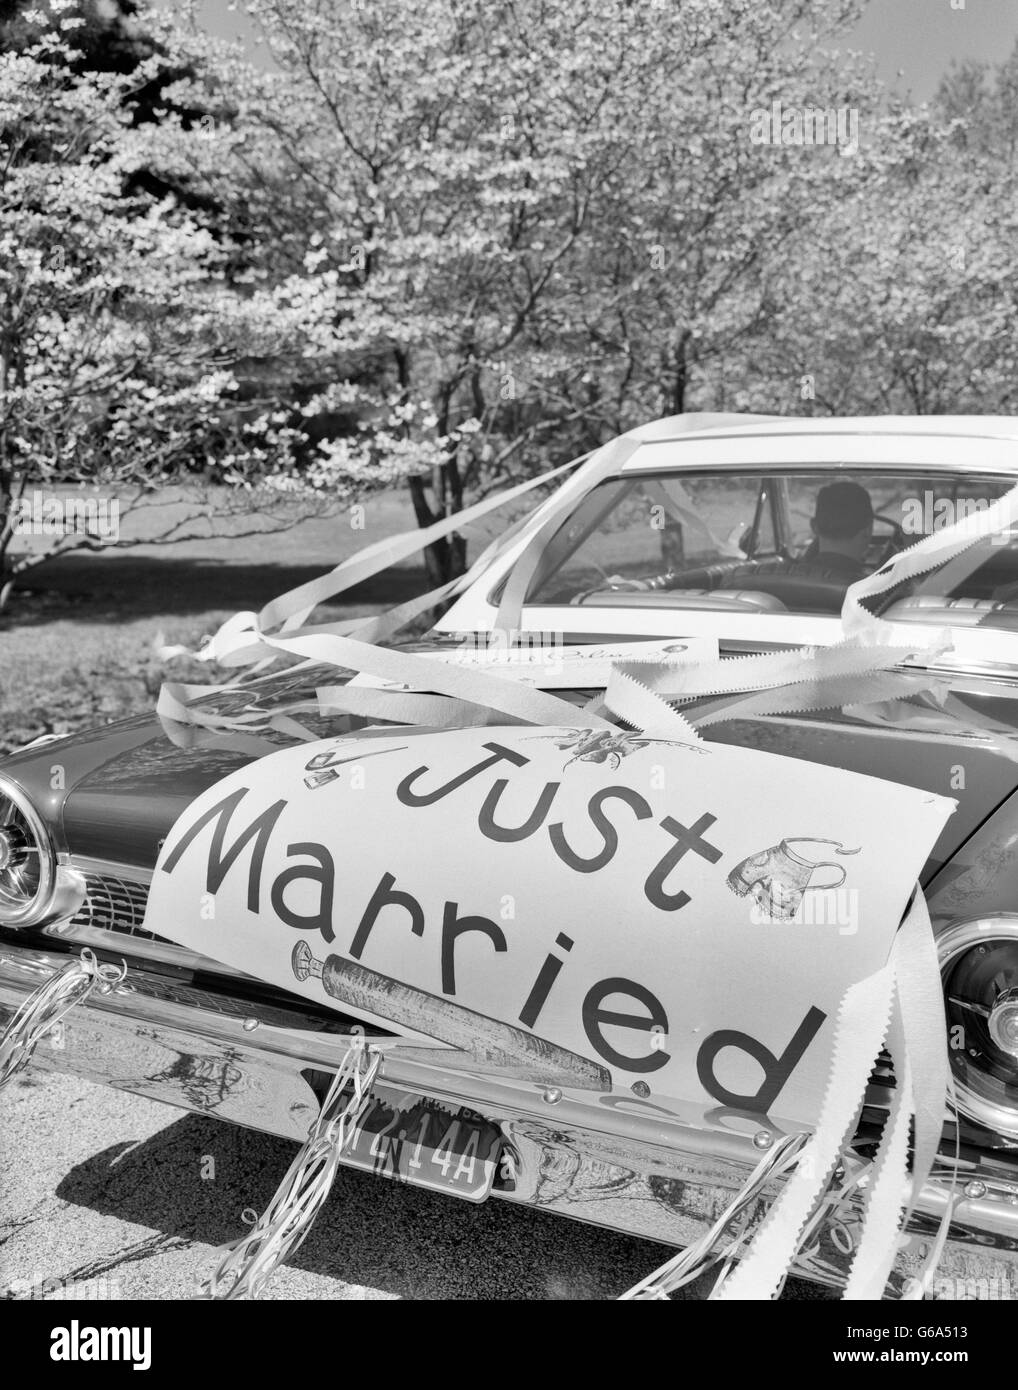 1960s CAR JUST MARRIED SIGN ON TRUNK AND STREAMERS - Stock Image